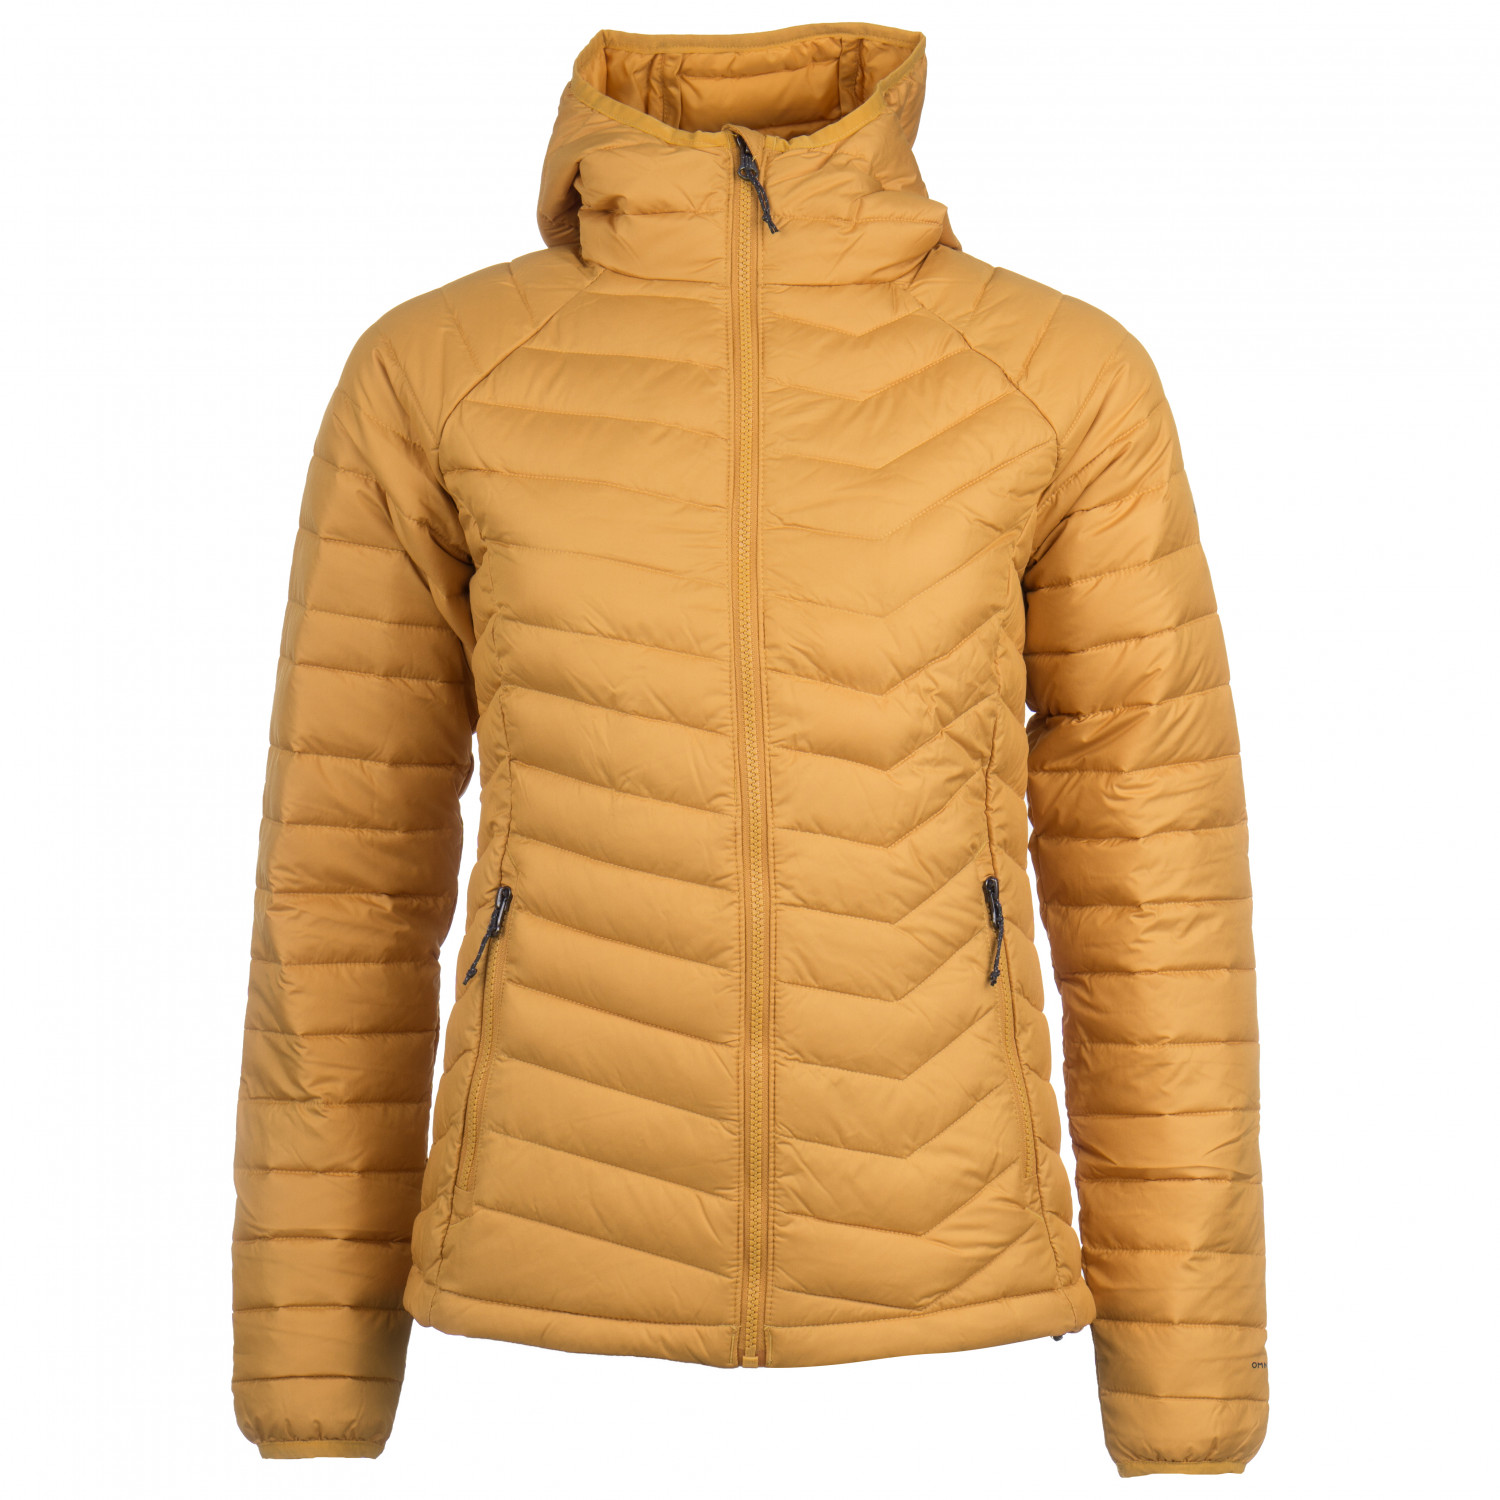 Hooded Lite Synthetic Jacket Columbia Powder hQtsrxdC